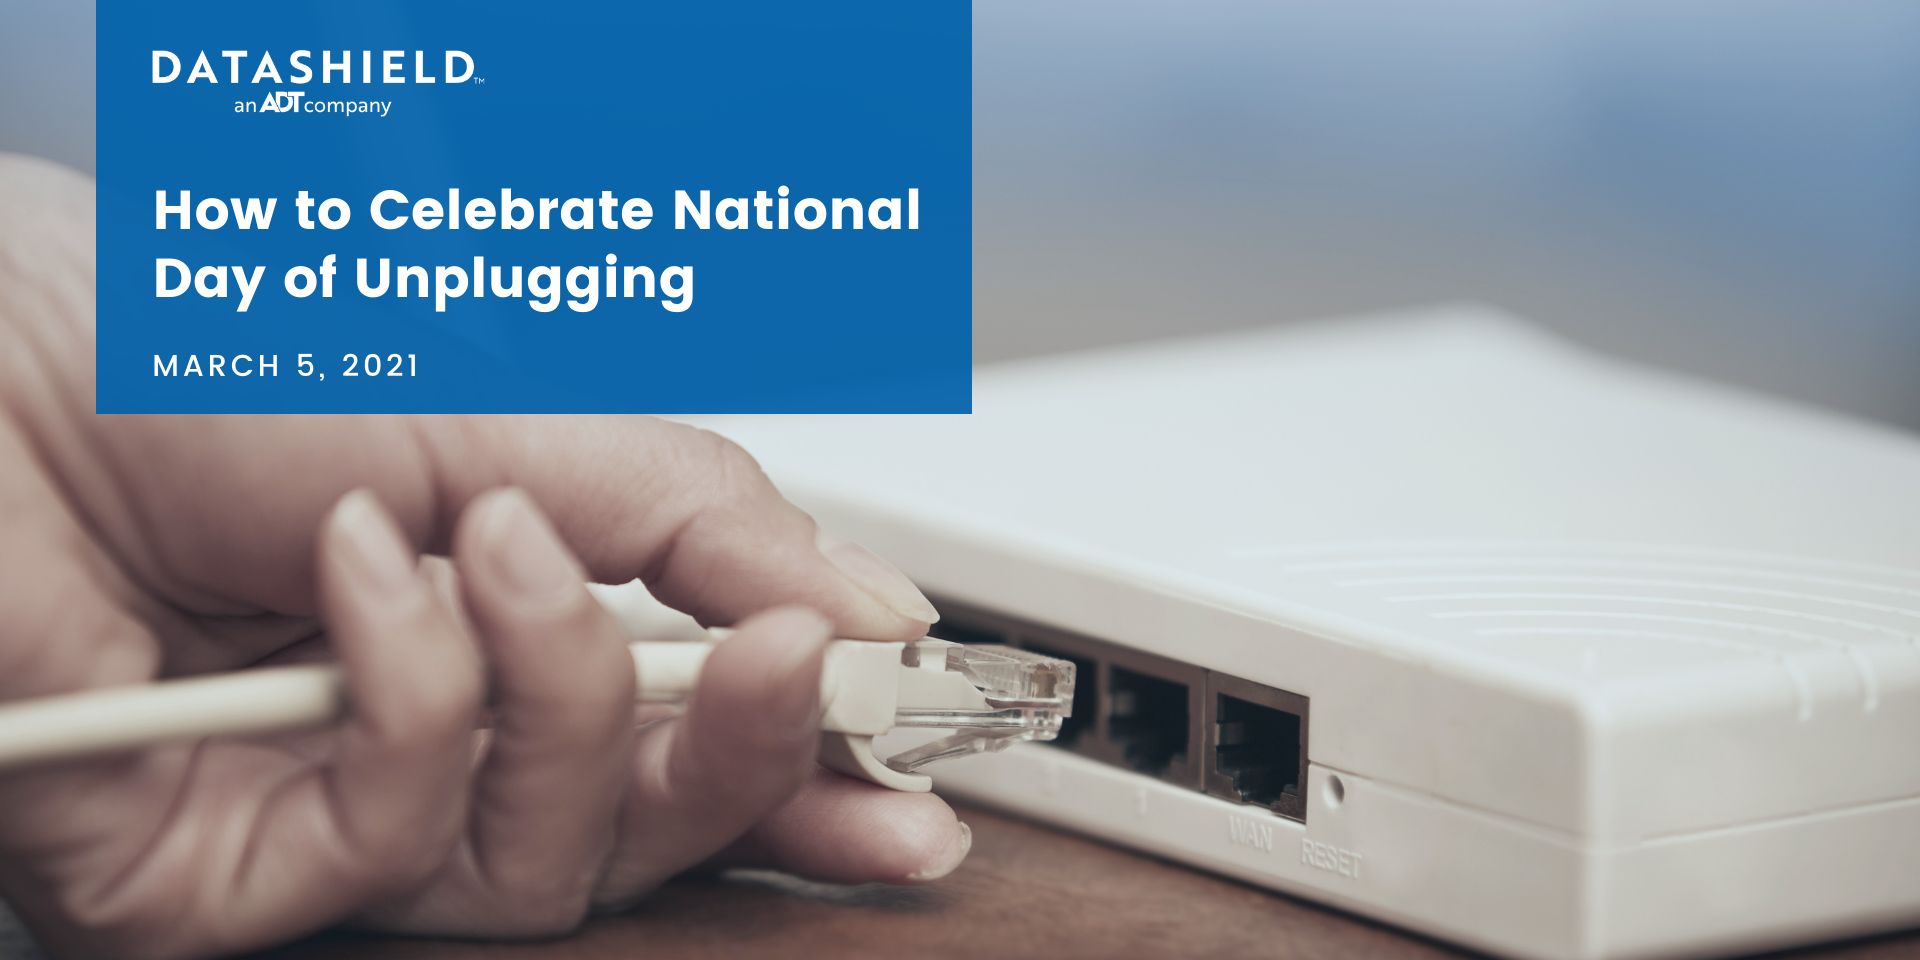 National Unplugging Day cybersecurity